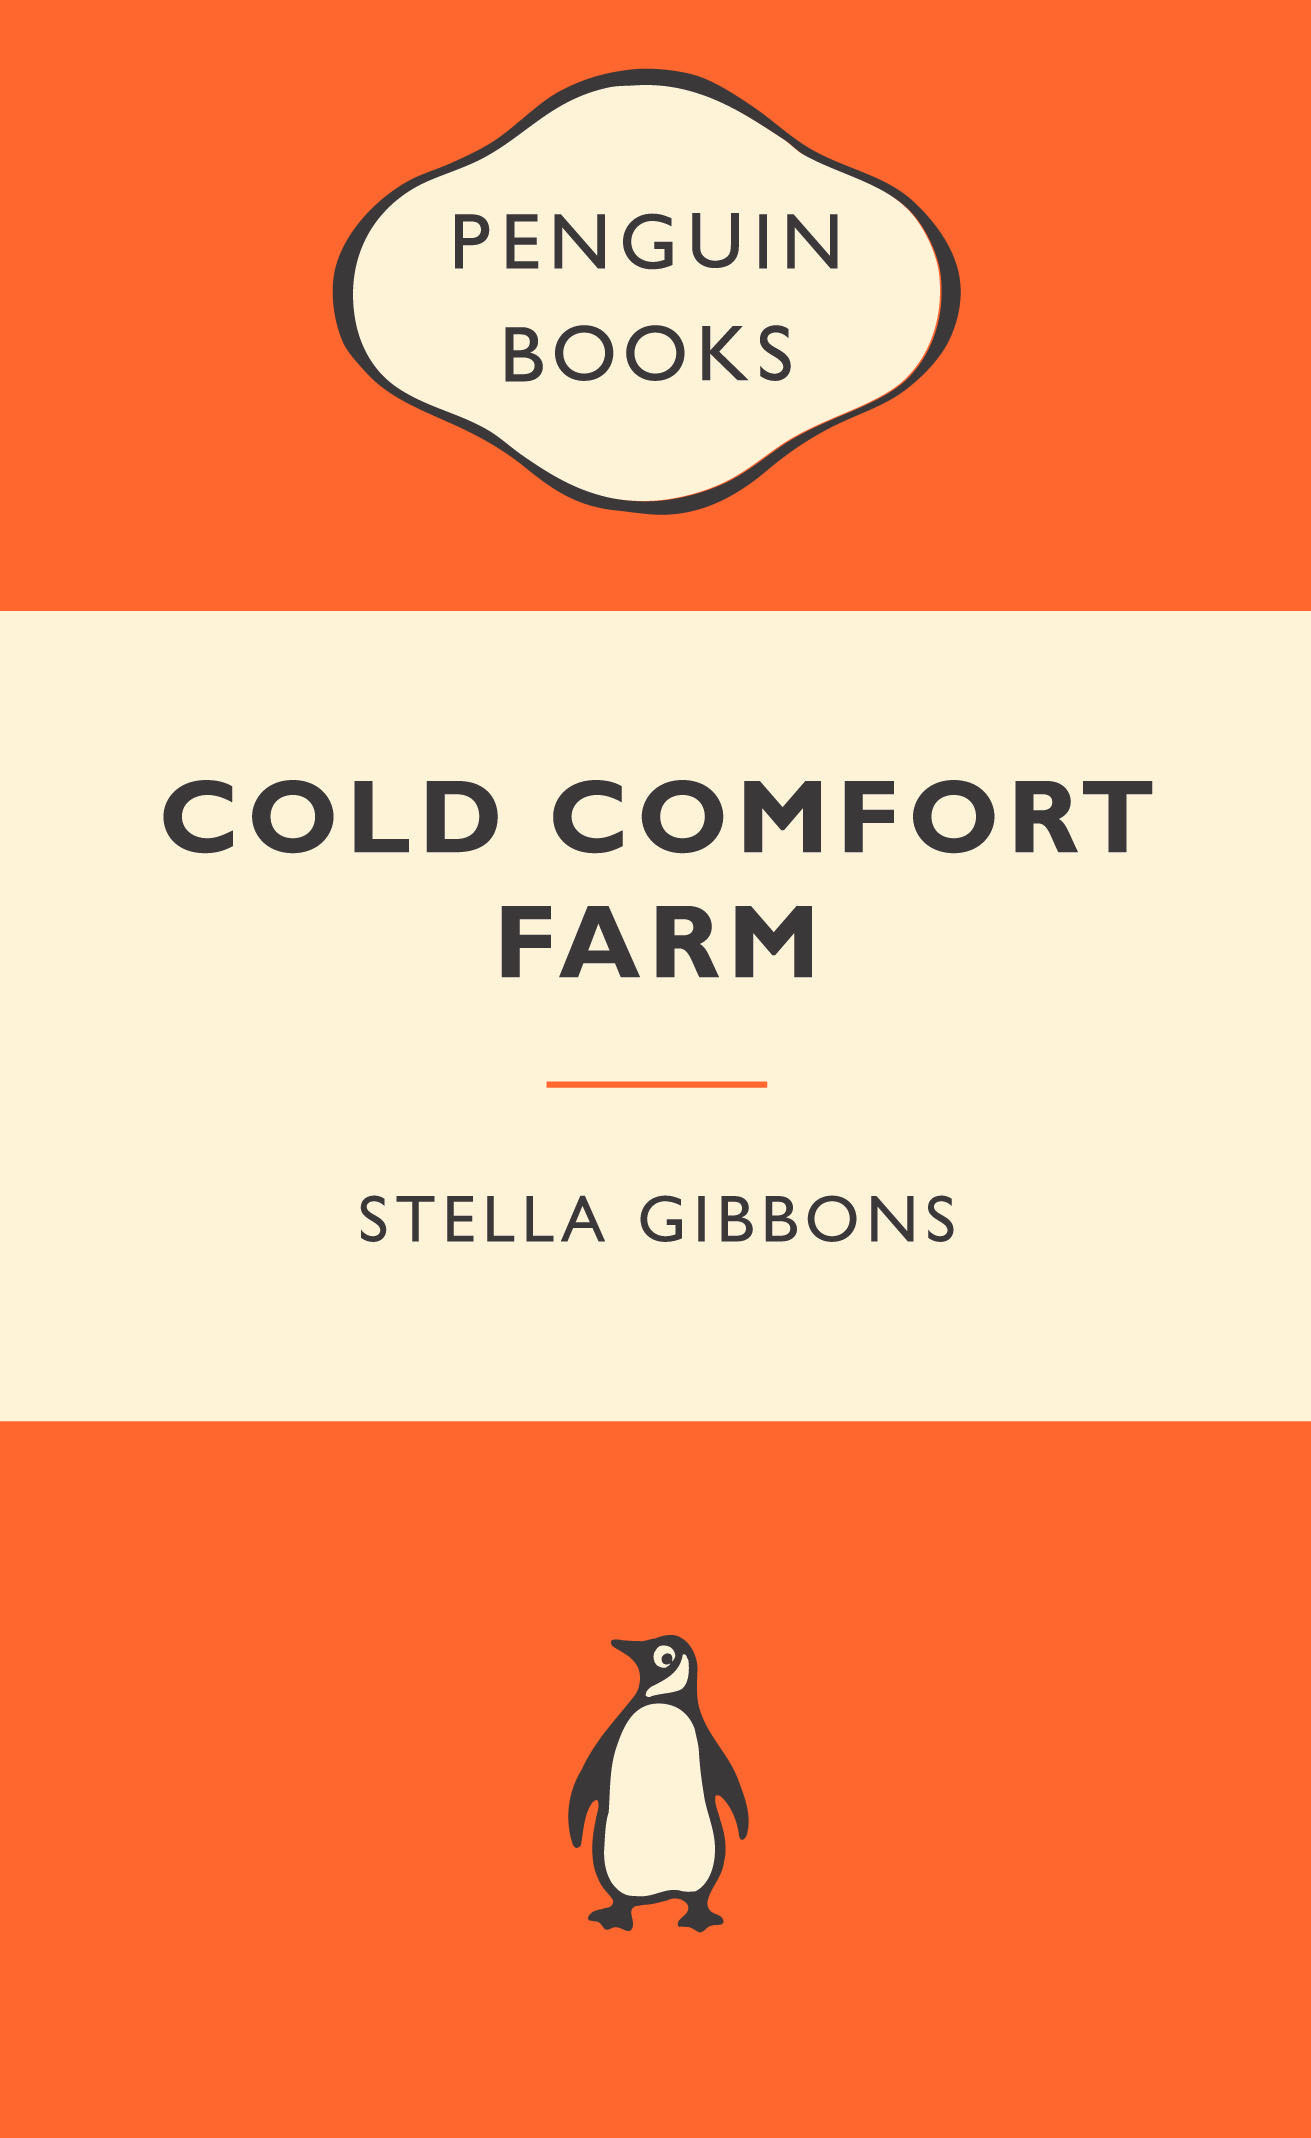 57. Cold Comfort Farm by Stella Gibbons (1932)